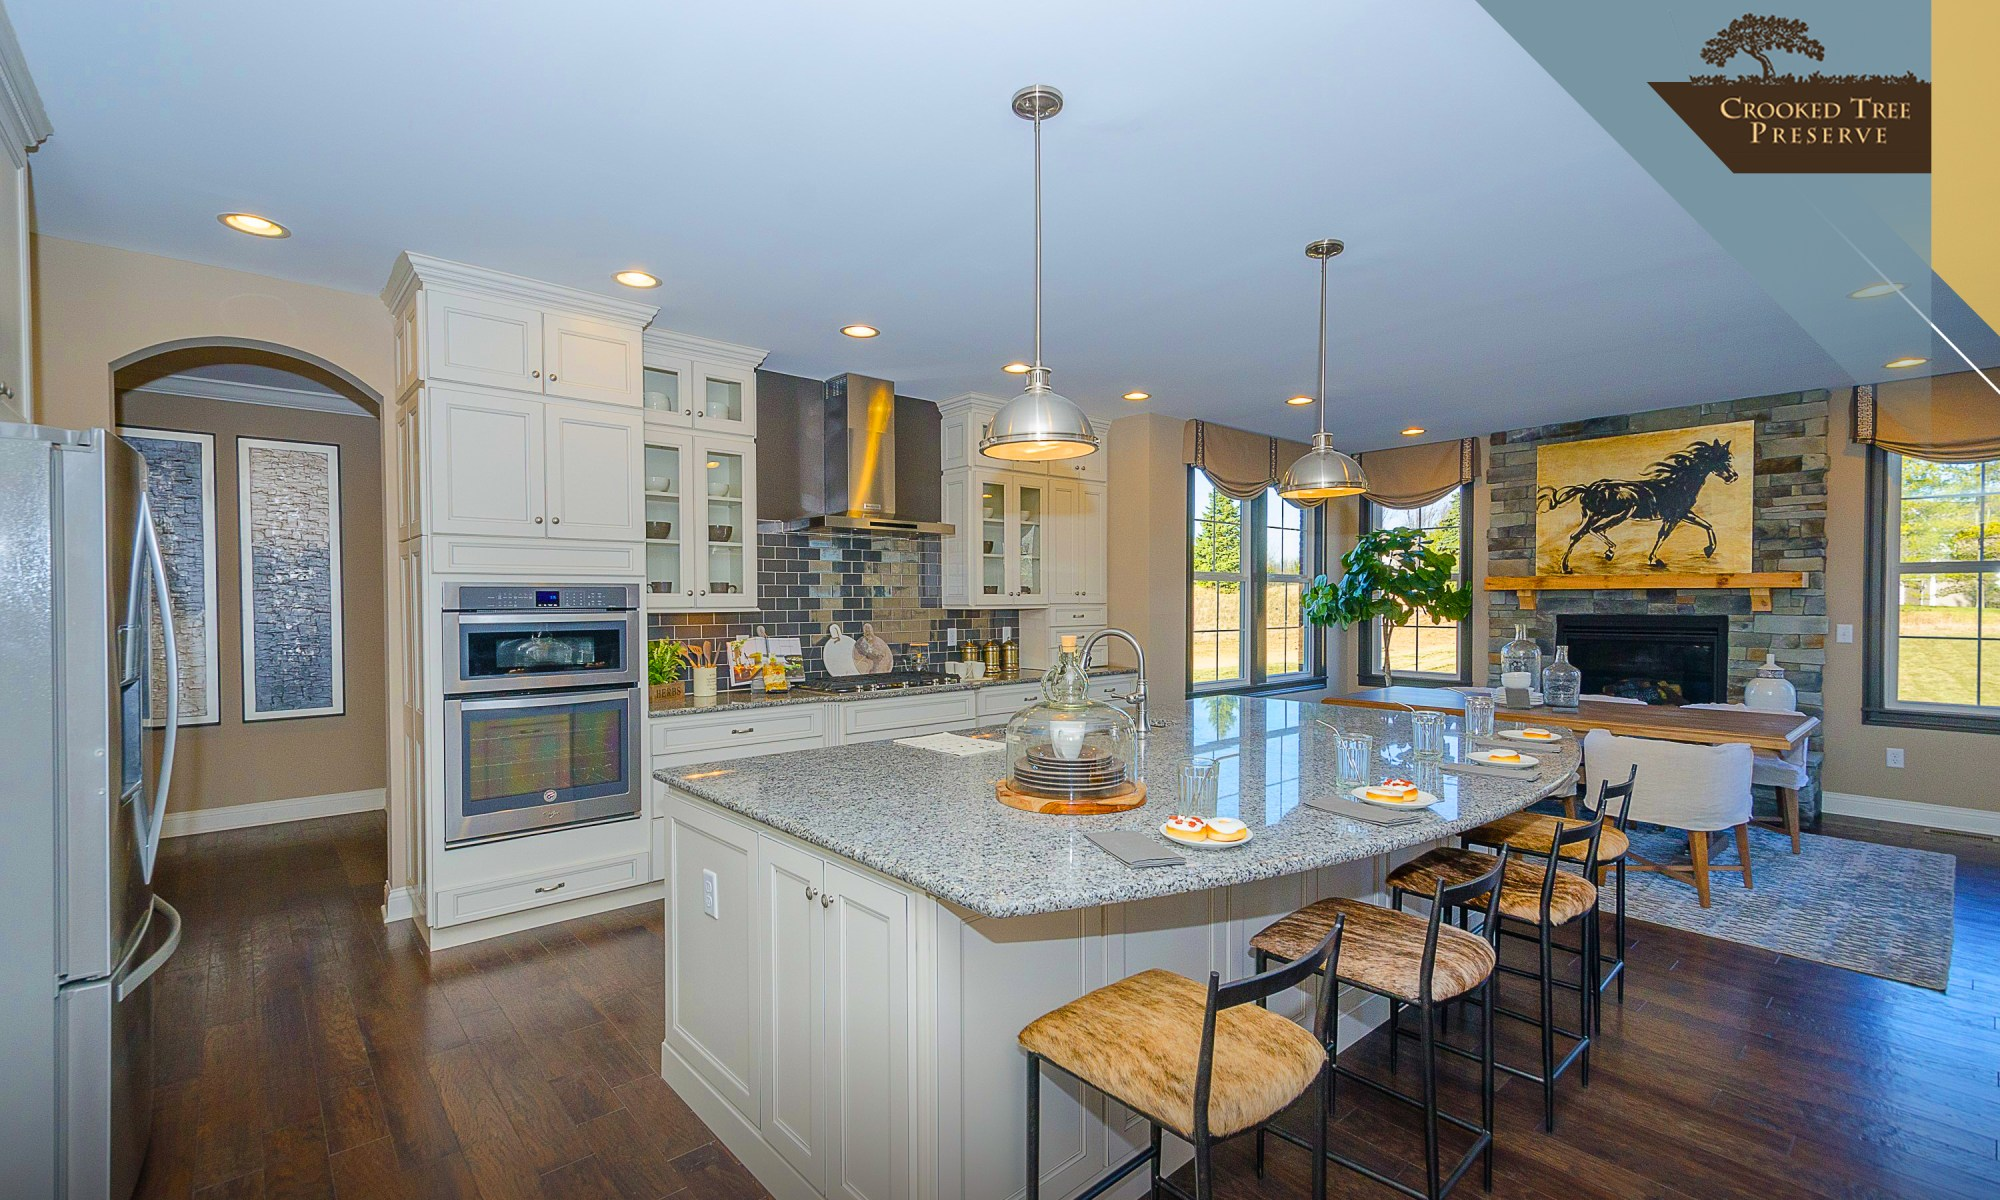 Fischer Homes Kitchen at Crooked Tree Preserve in Mason, Ohio